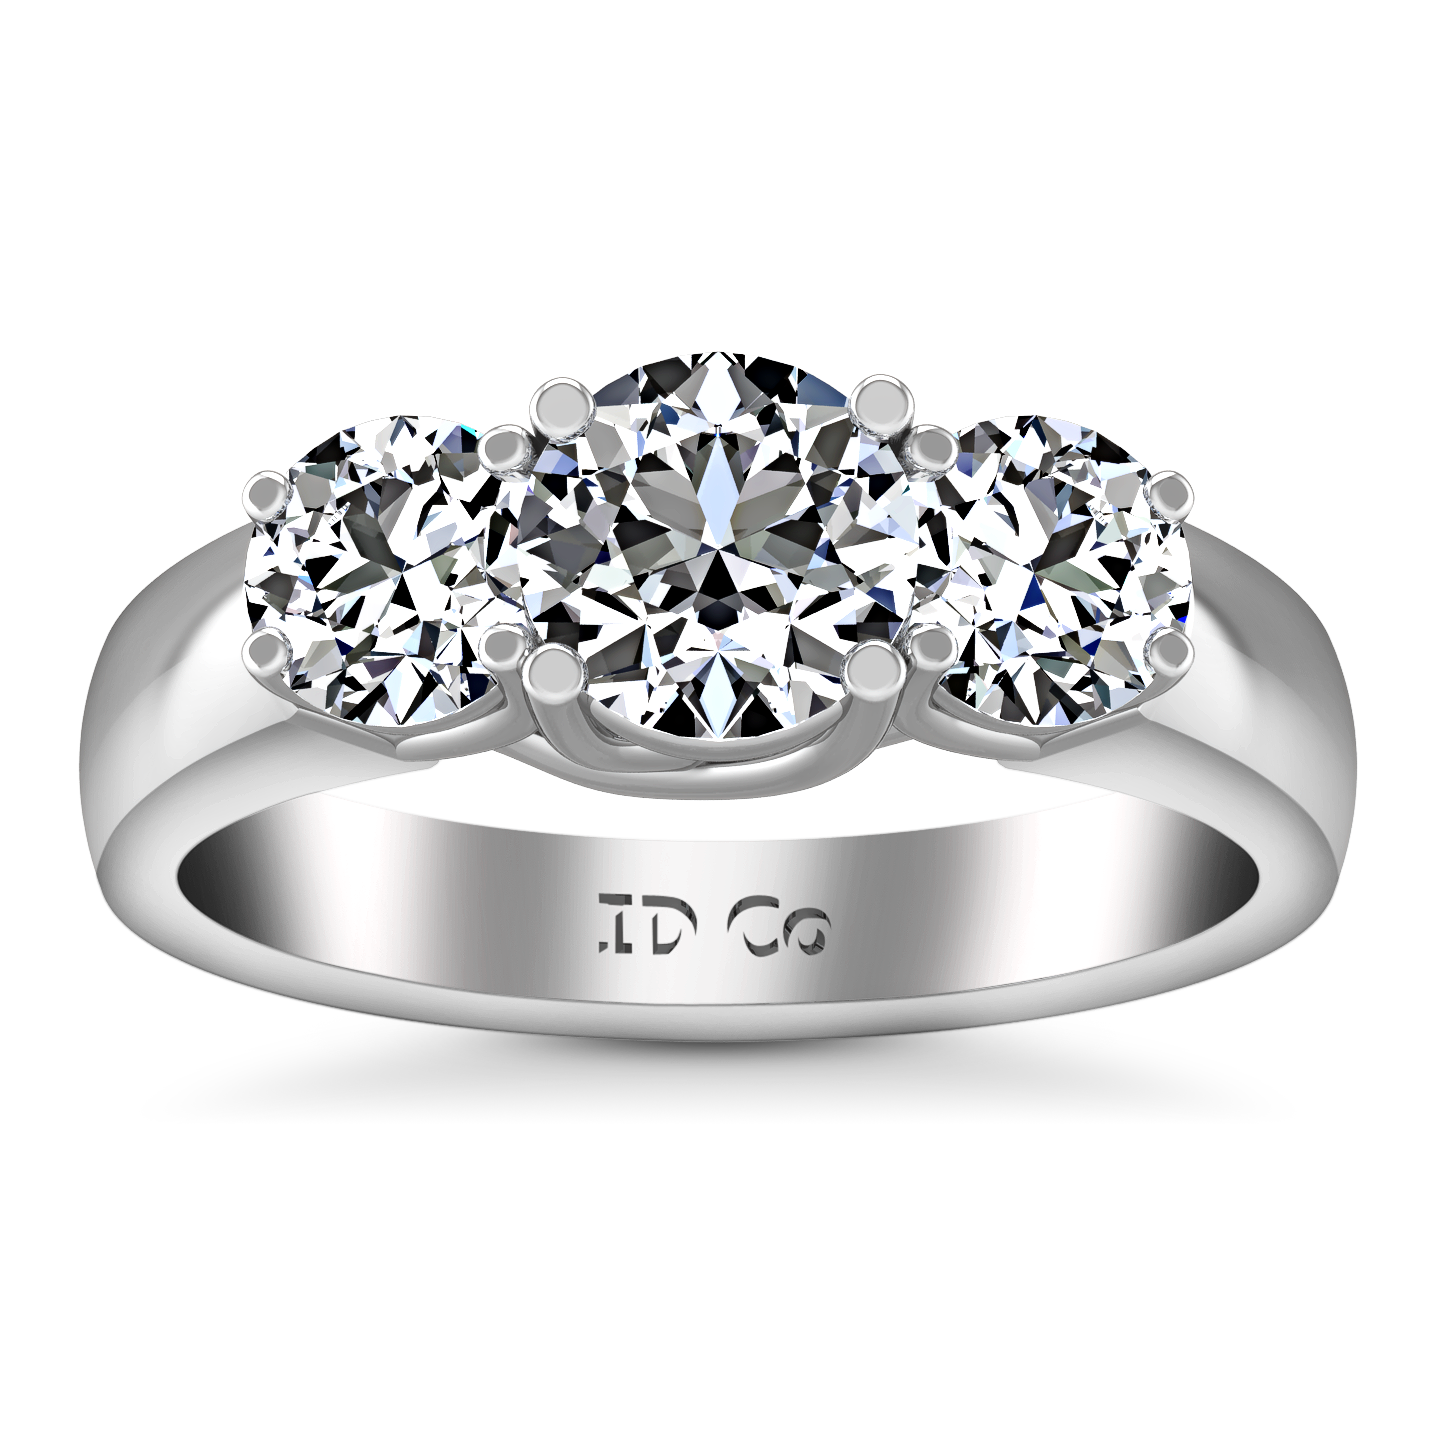 products diamond secret made platinum custom oval engagement jewelry fire ring rings prong moissanite gallery